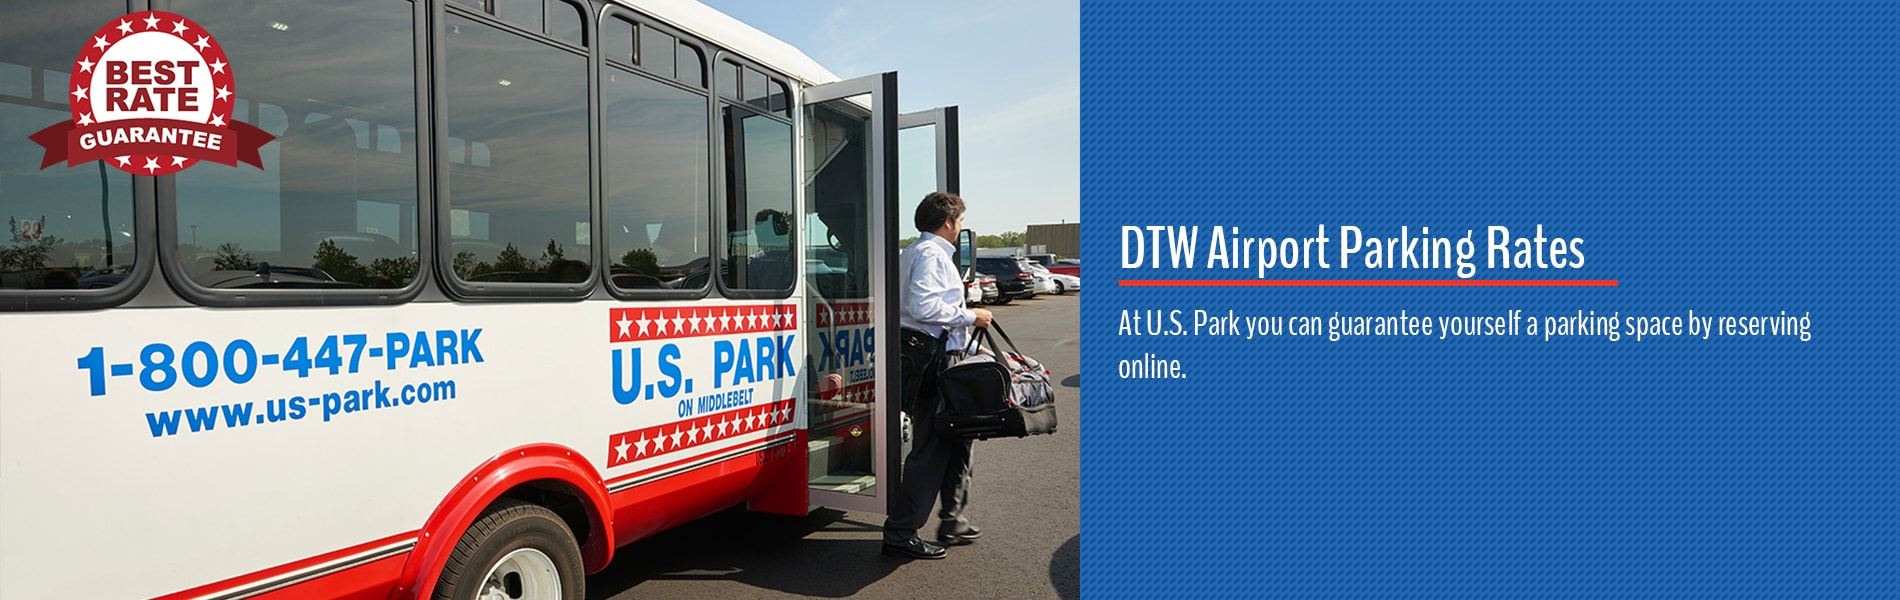 Dtw Airport Parking Rates Dtw Discount Parking